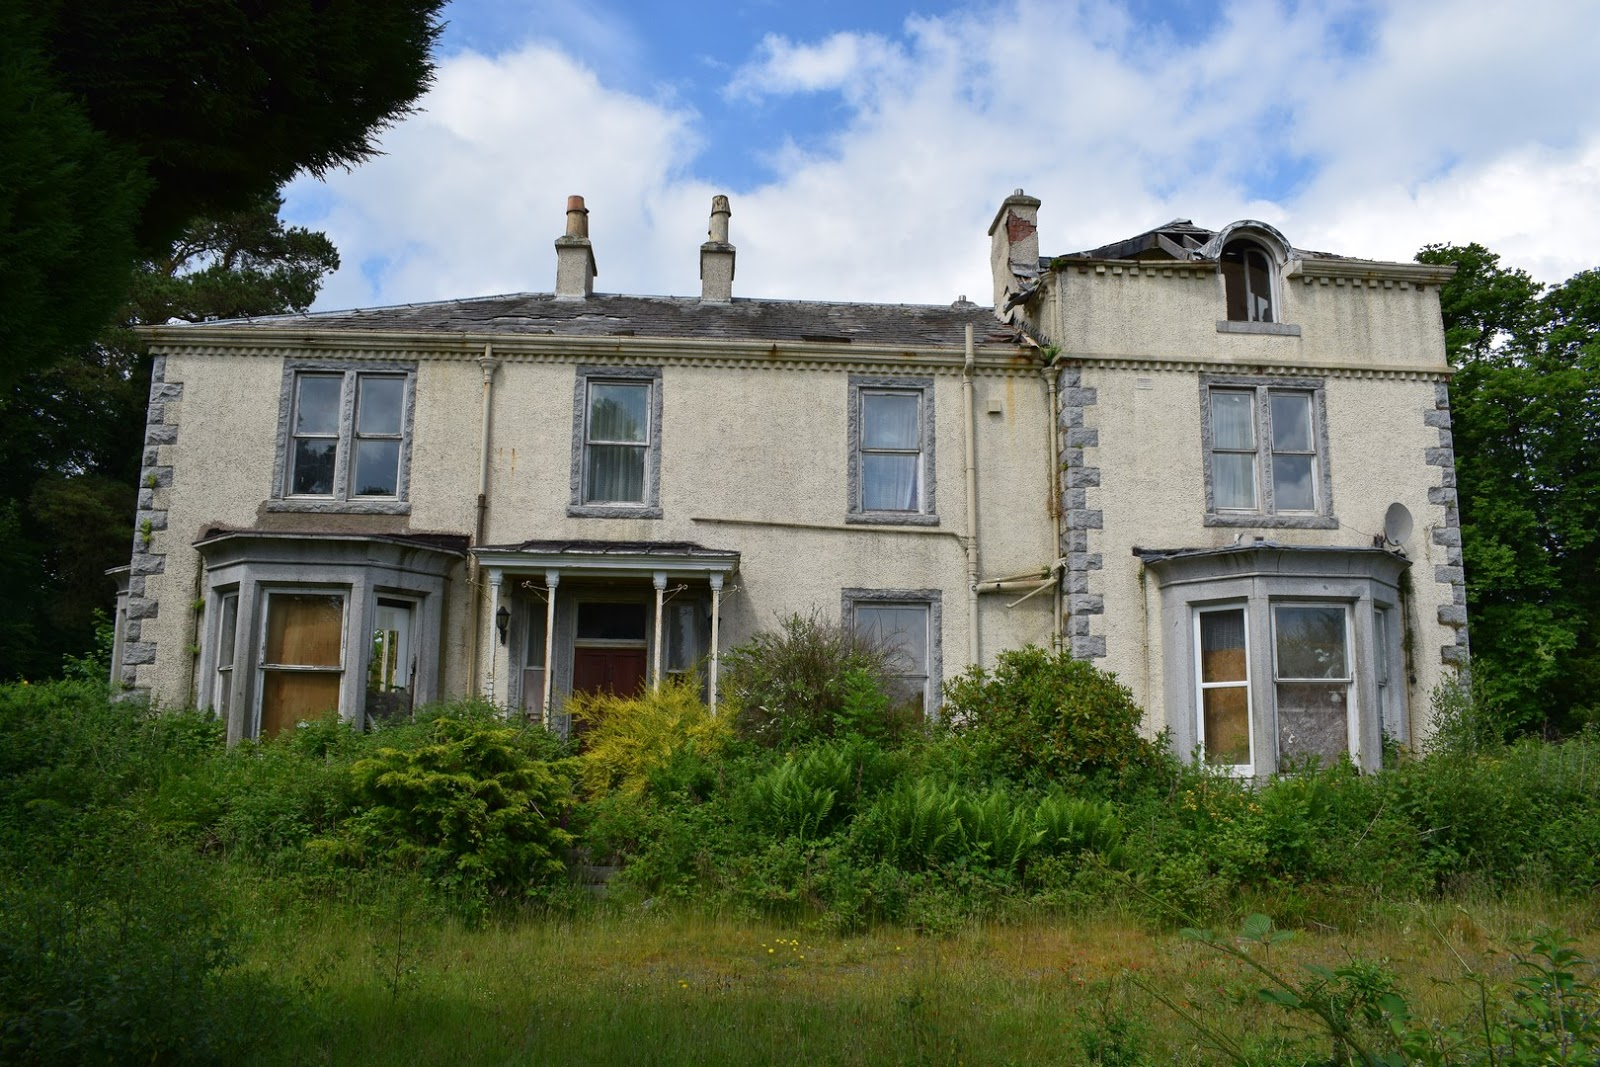 Wreck of the week two derelict and lovely scottish mansions for Build a house for 150k